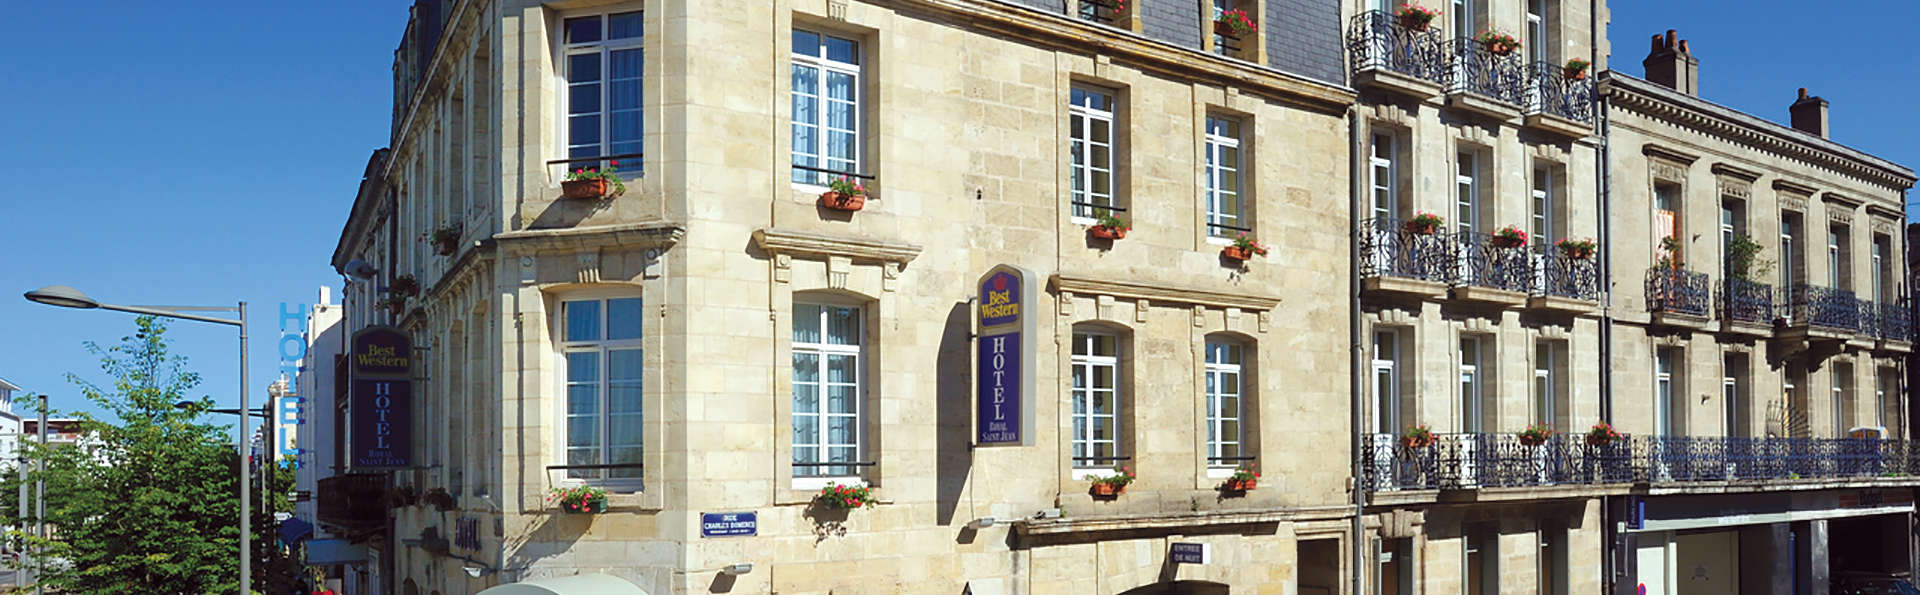 Best Western Plus Gare Saint Jean  - EDIT_Fachada3.jpg